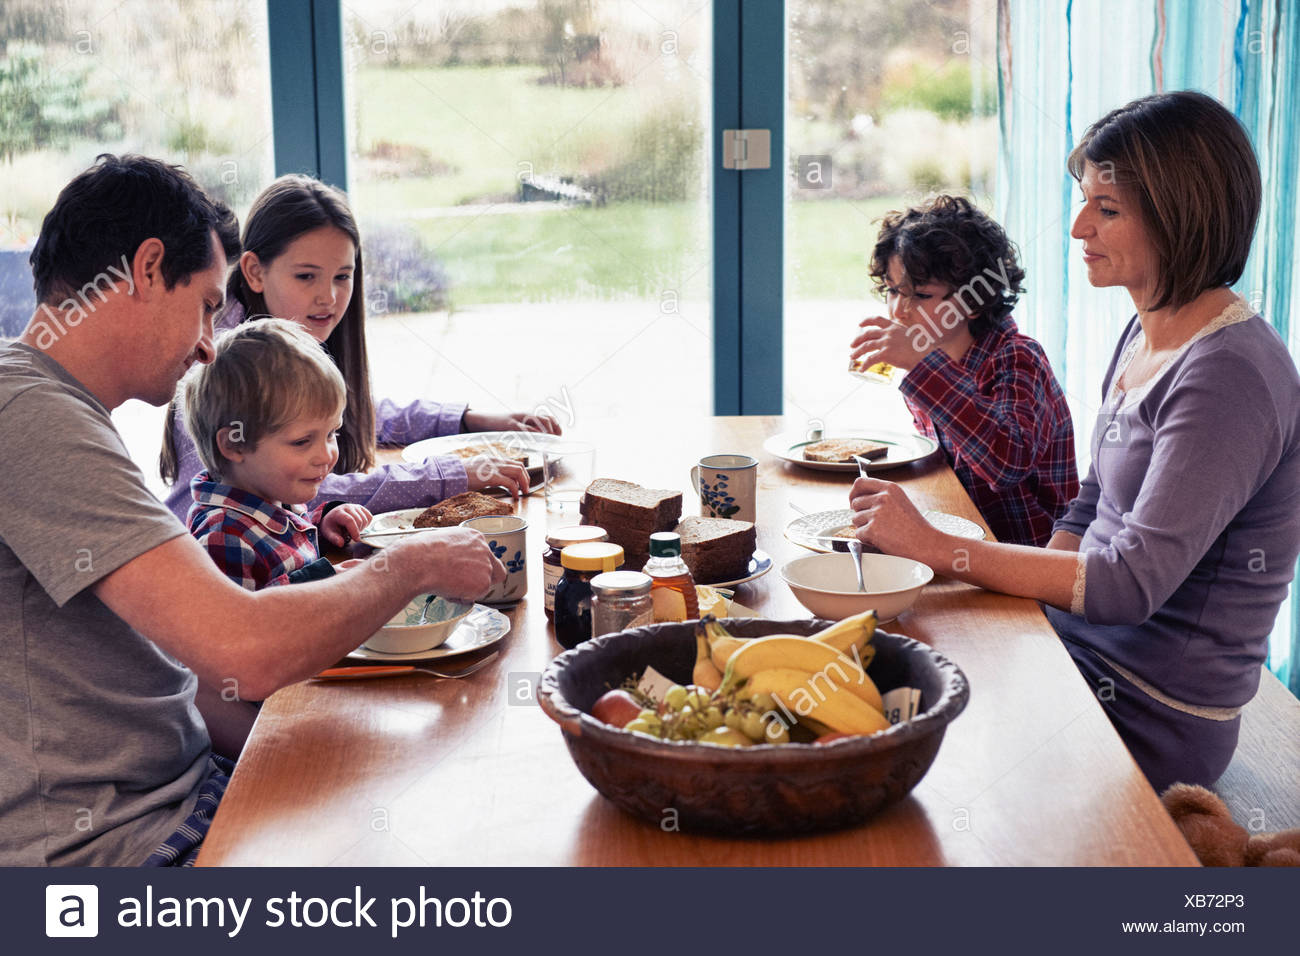 Family having dinner together at table Stock Photo